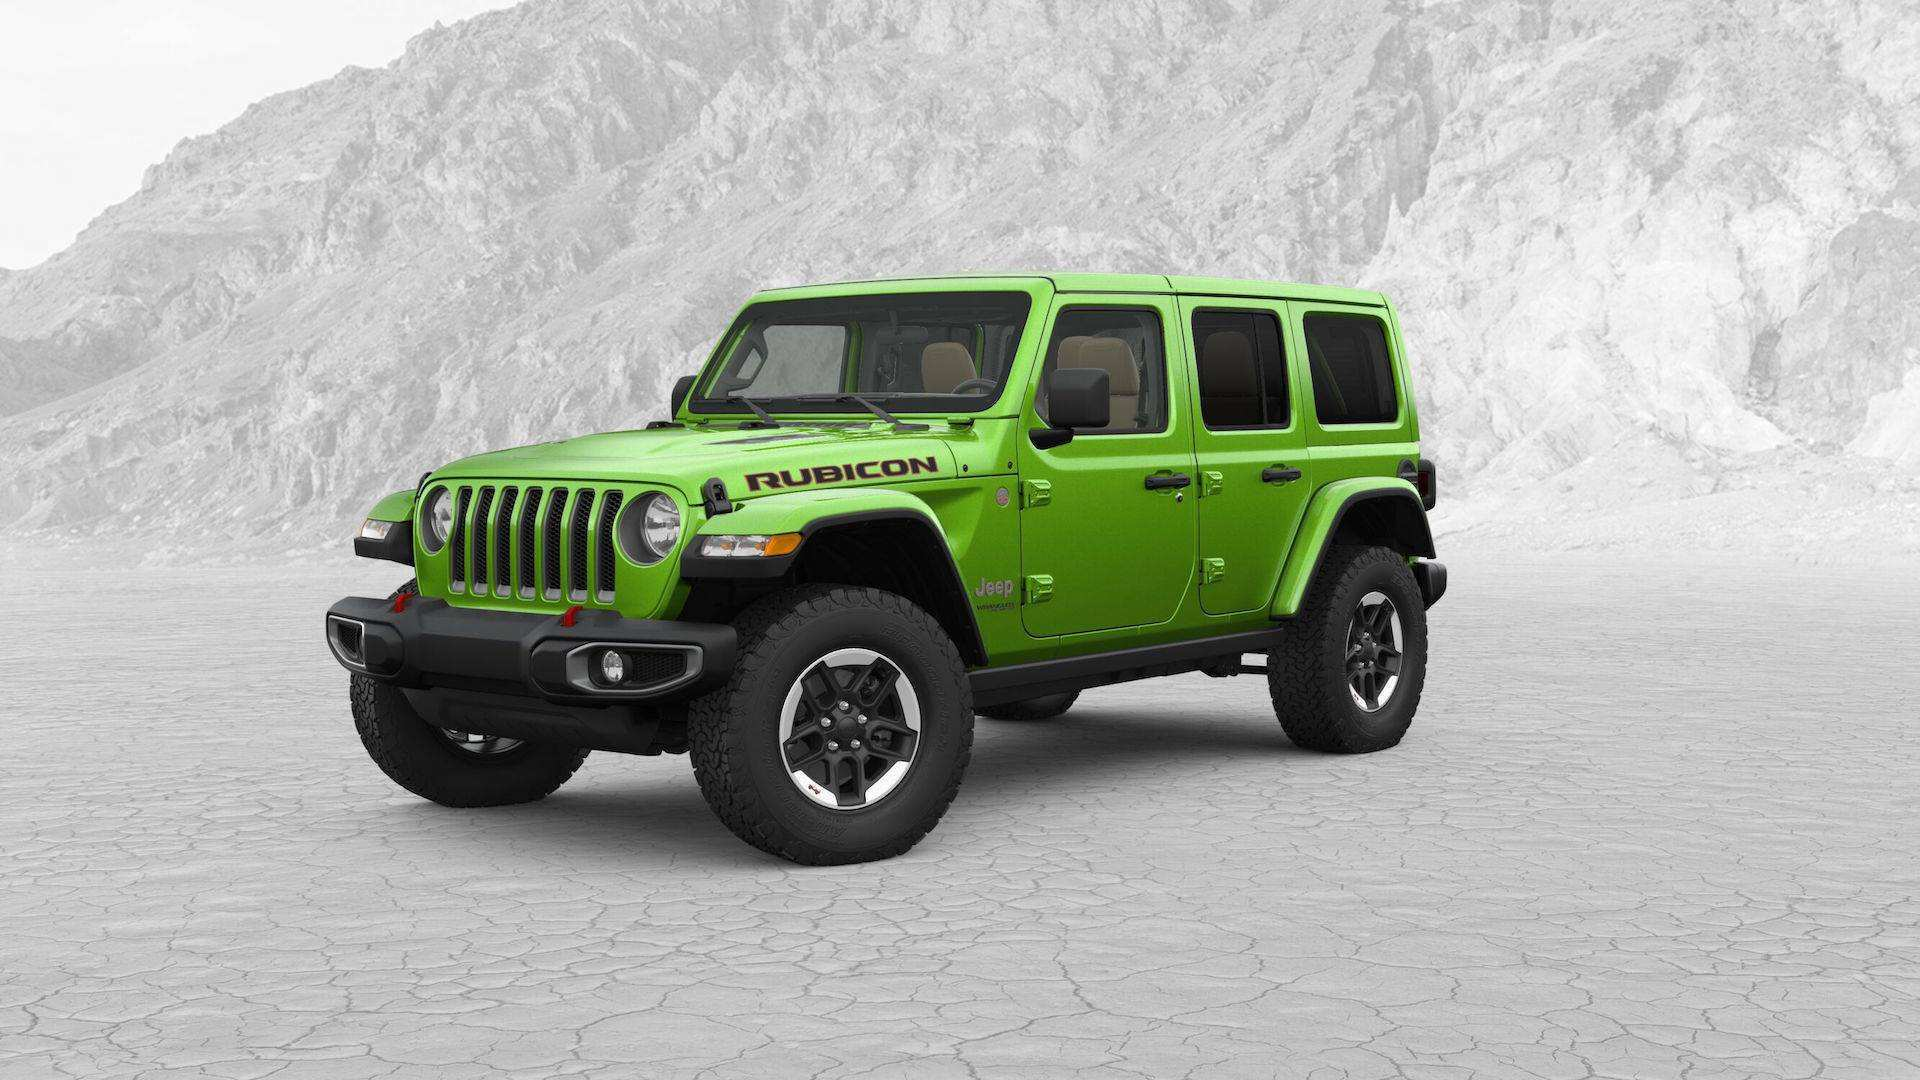 62 All New Best 2019 Jeep Unlimited Colors Price Specs and Review with Best 2019 Jeep Unlimited Colors Price